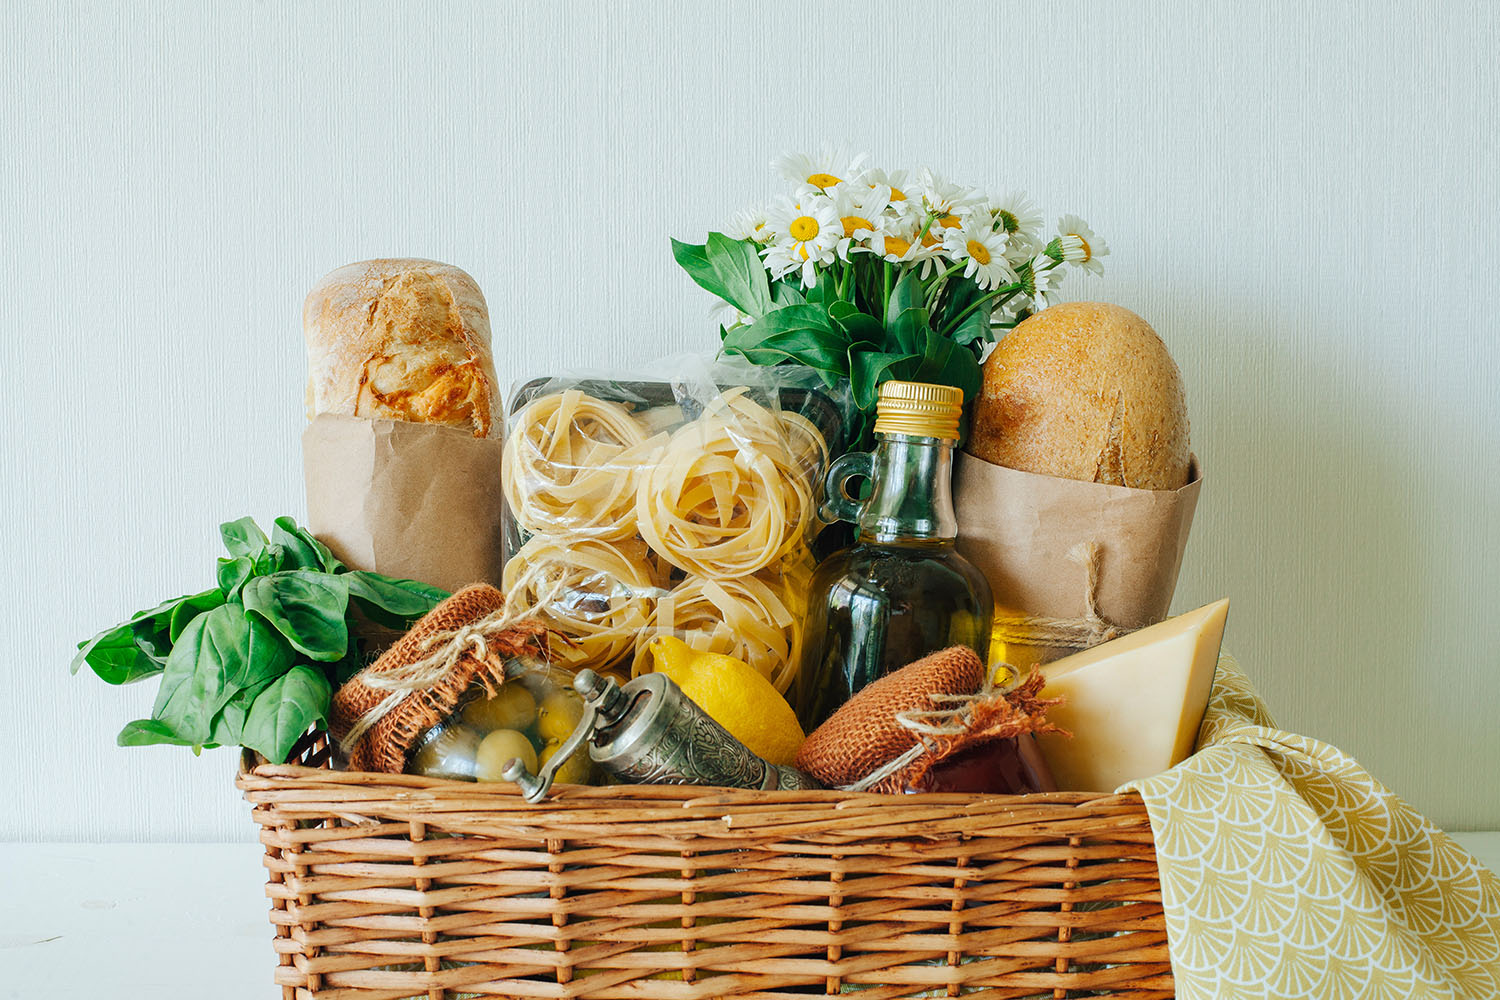 Holiday pricing: are gift baskets overpriced?